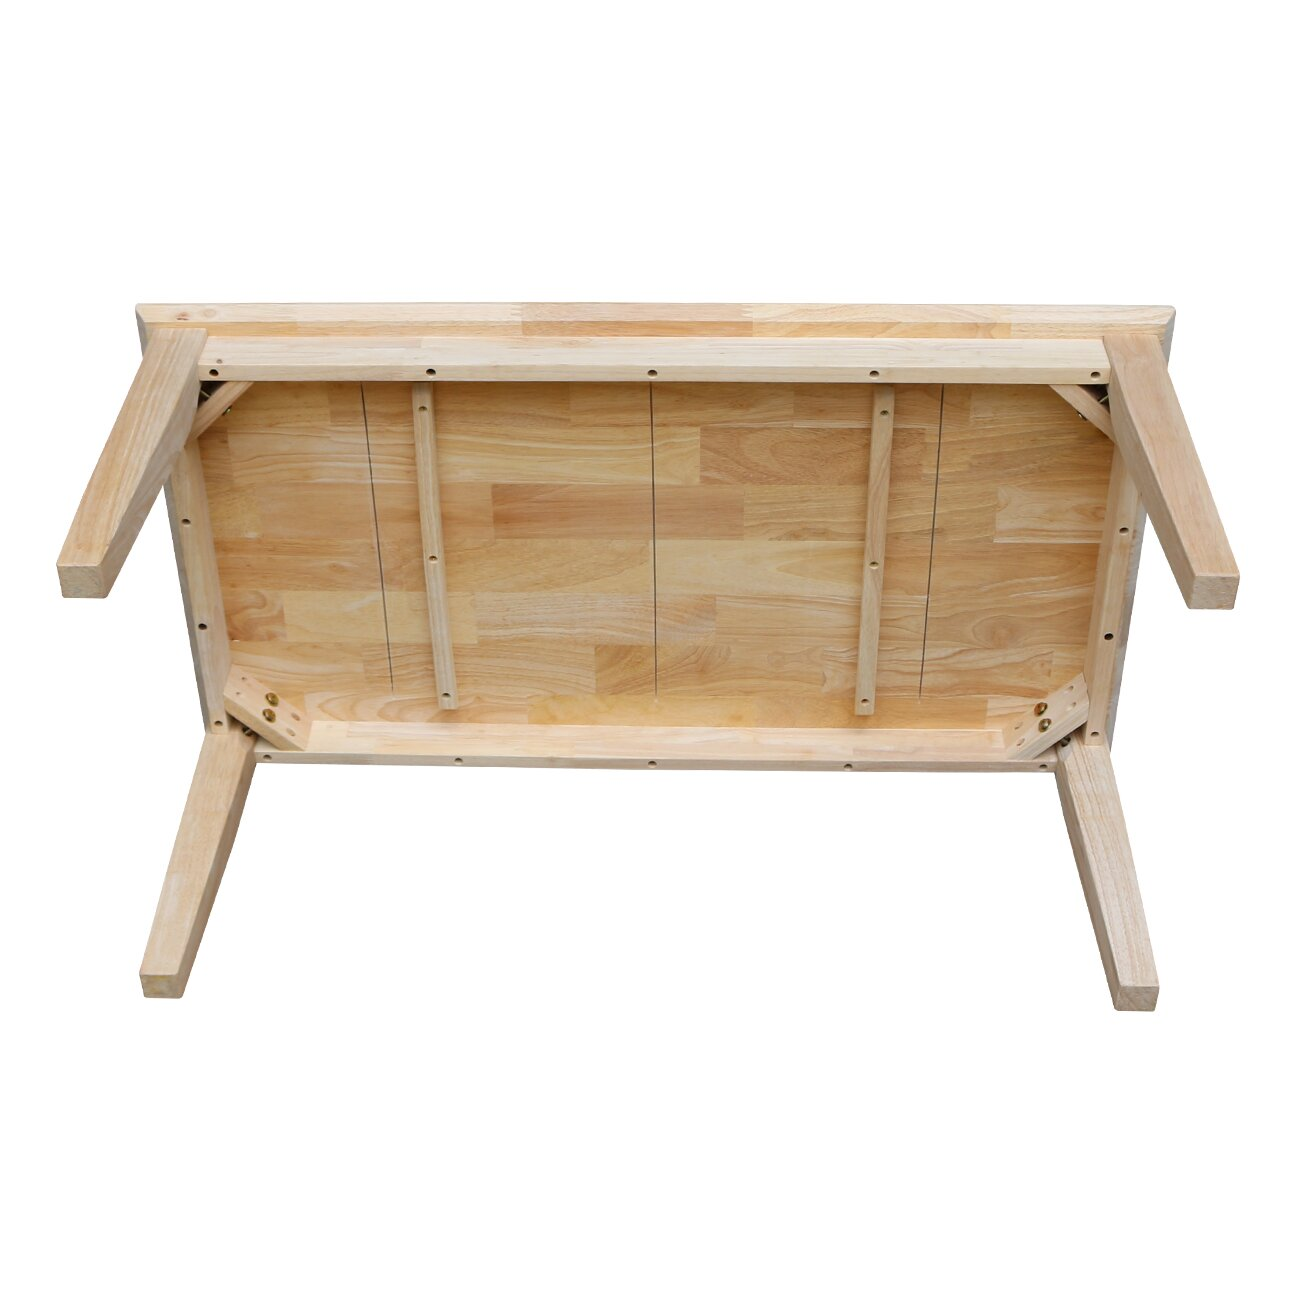 Unfinished Wood Shaker Tall Coffee Table - International Concepts Unfinished Wood Shaker Tall Coffee Table